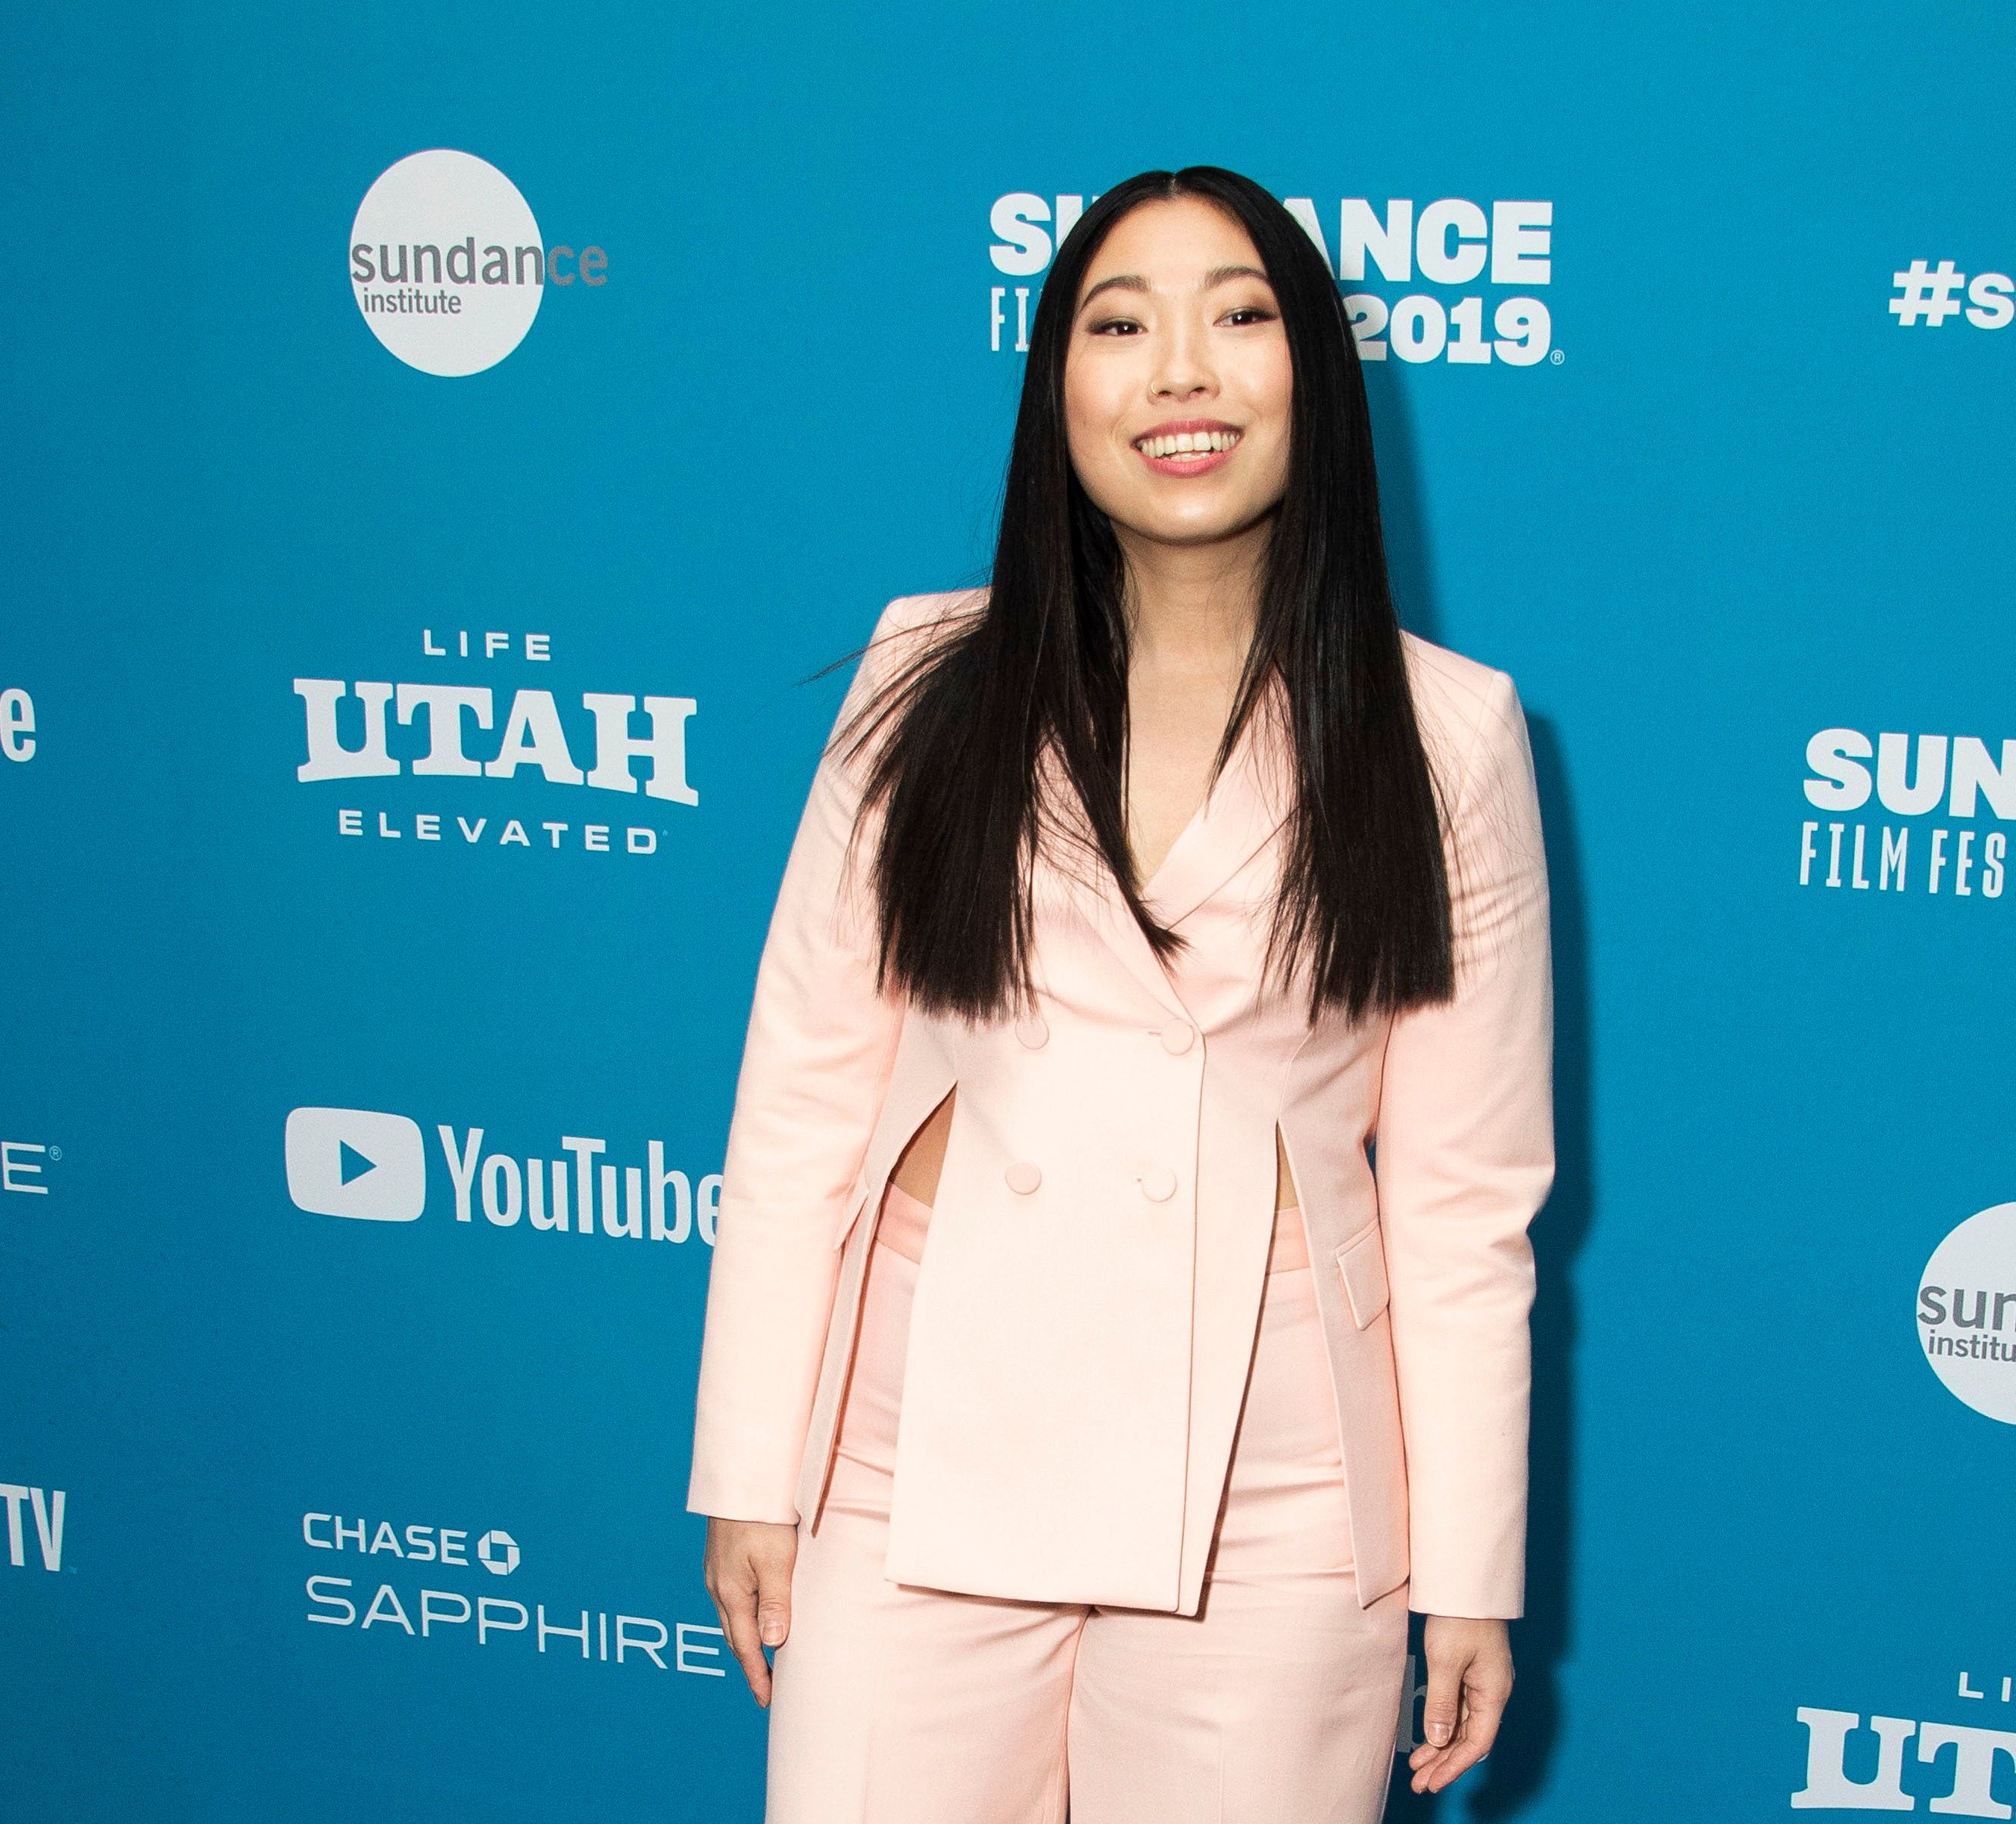 """Actress Awkwafina poses at the premiere of """"Paradise Hills"""" during the 2019 Sundance Film Festival, Saturday, Jan. 26, 2019, in Park City, Utah. (Photo by Arthur Mola/Invision/AP)"""